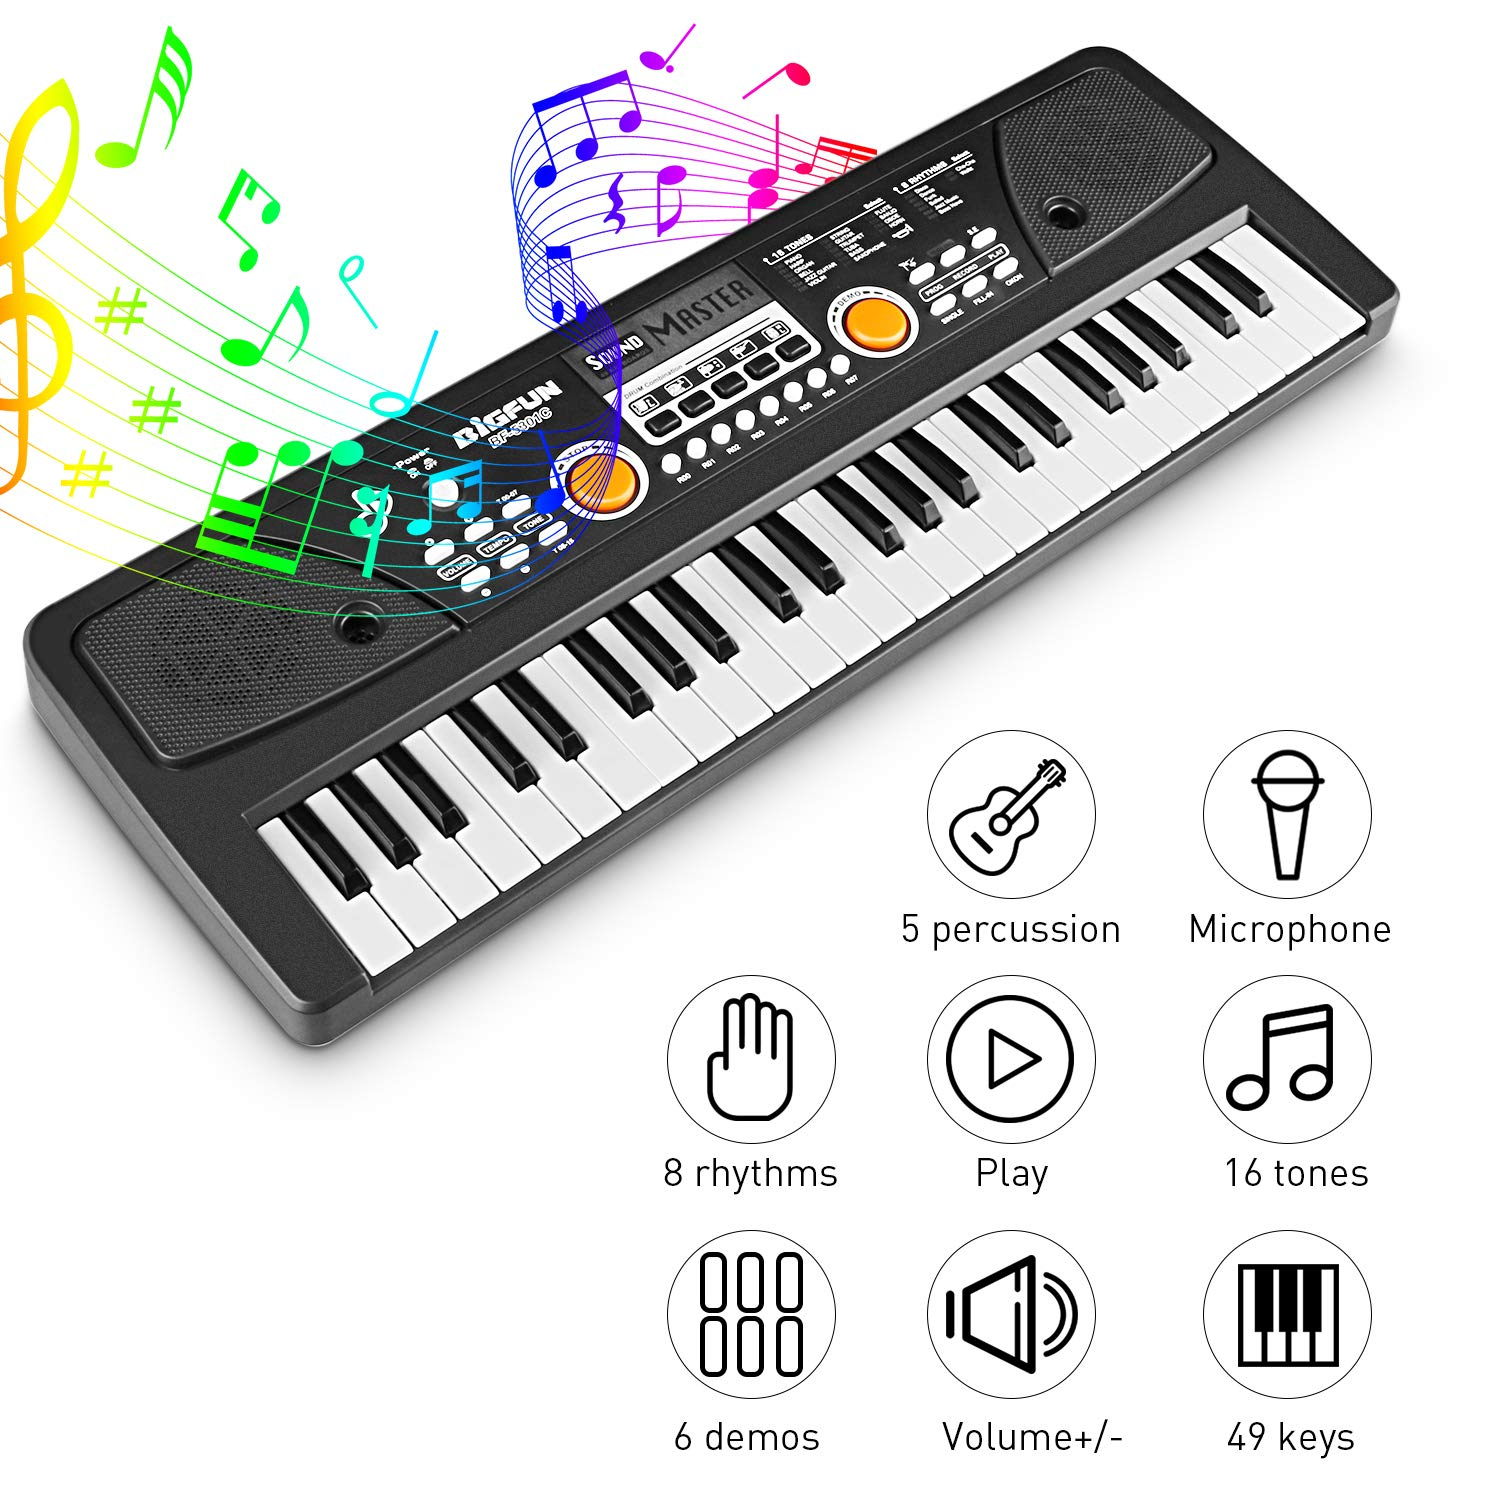 Kids Piano Keyboard 49 Keys- Multi-function Portable Piano Keyboard Electronic Organ with Charging function for Kids and Beginners Chargeable by Tencoz (Image #4)